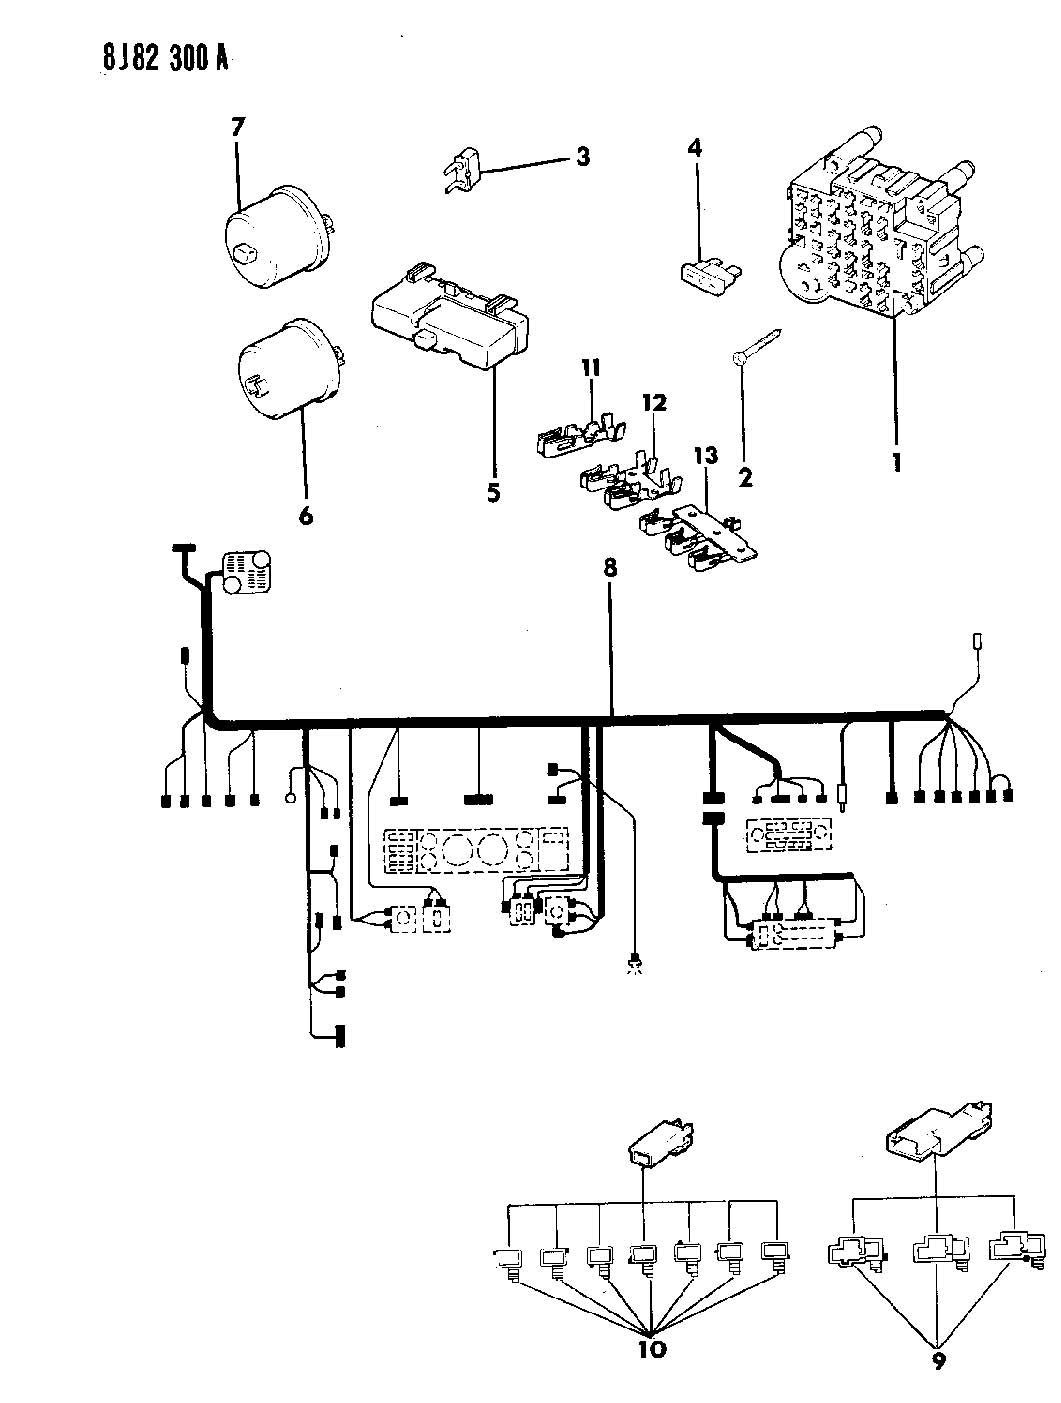 1989 jeep cherokee wiring diagram free picture